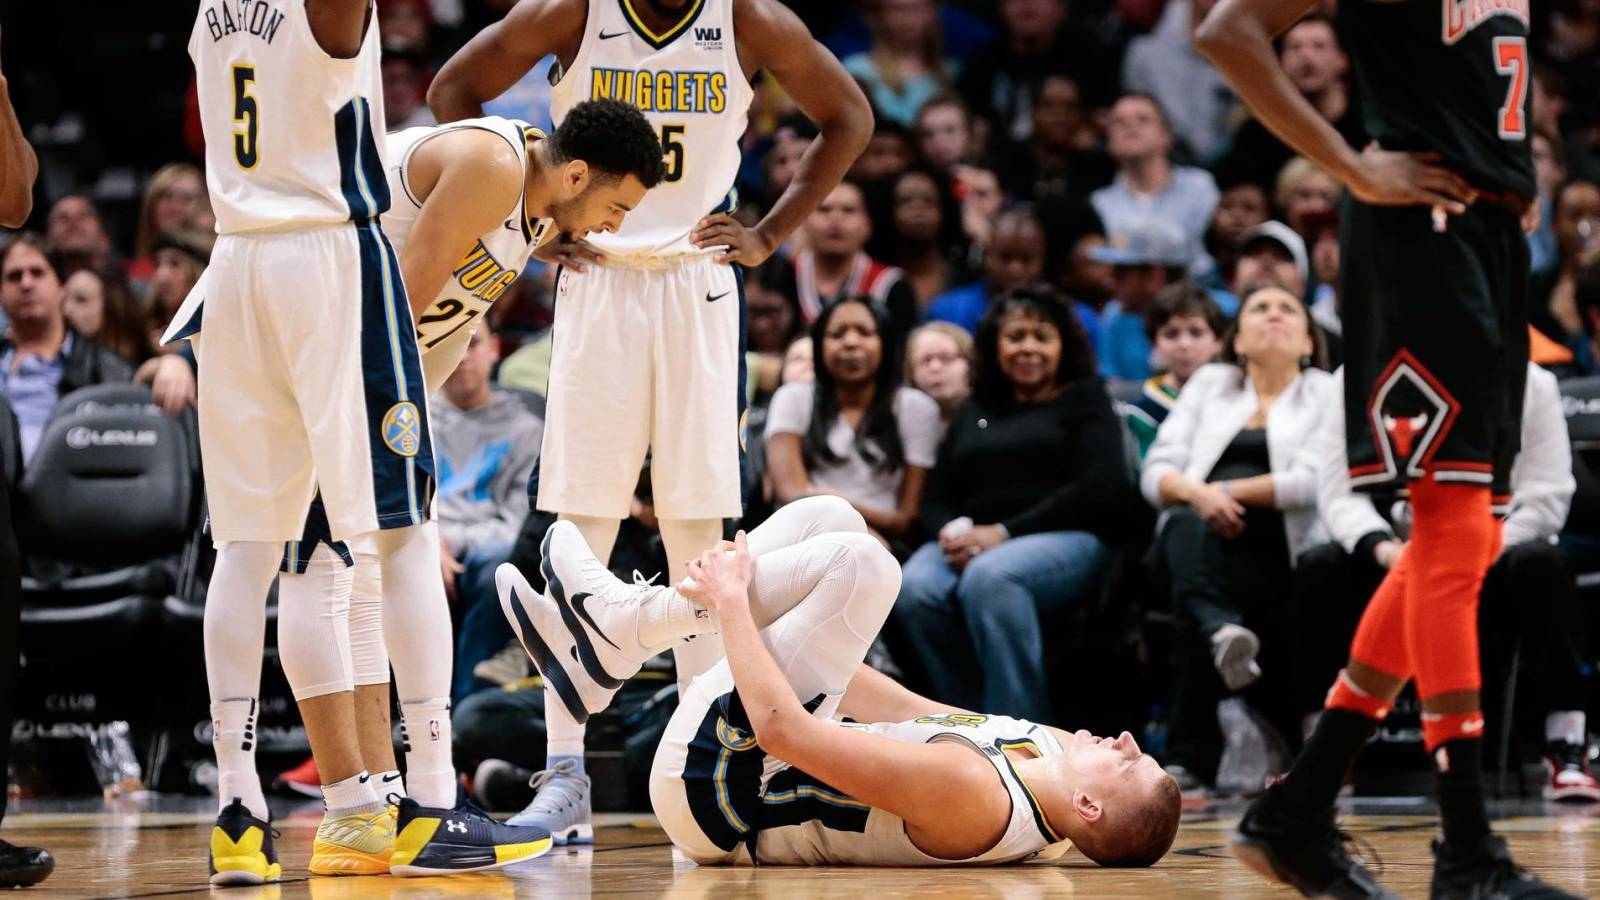 Report: Nuggets optimistic about Nikola Jokic injury | Yardbarker.com